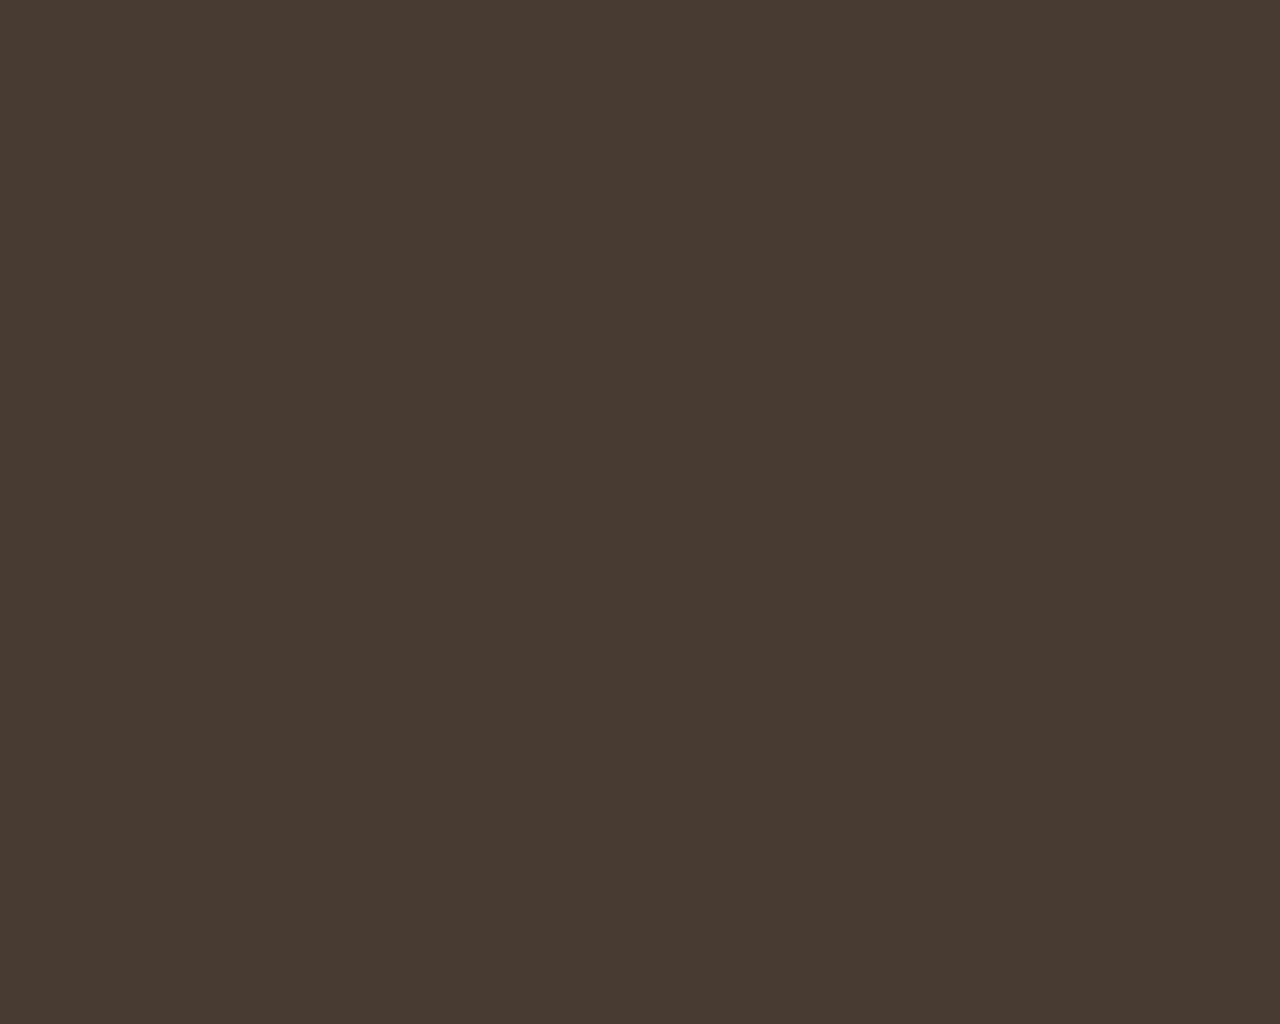 1280x1024 Taupe Solid Color Background